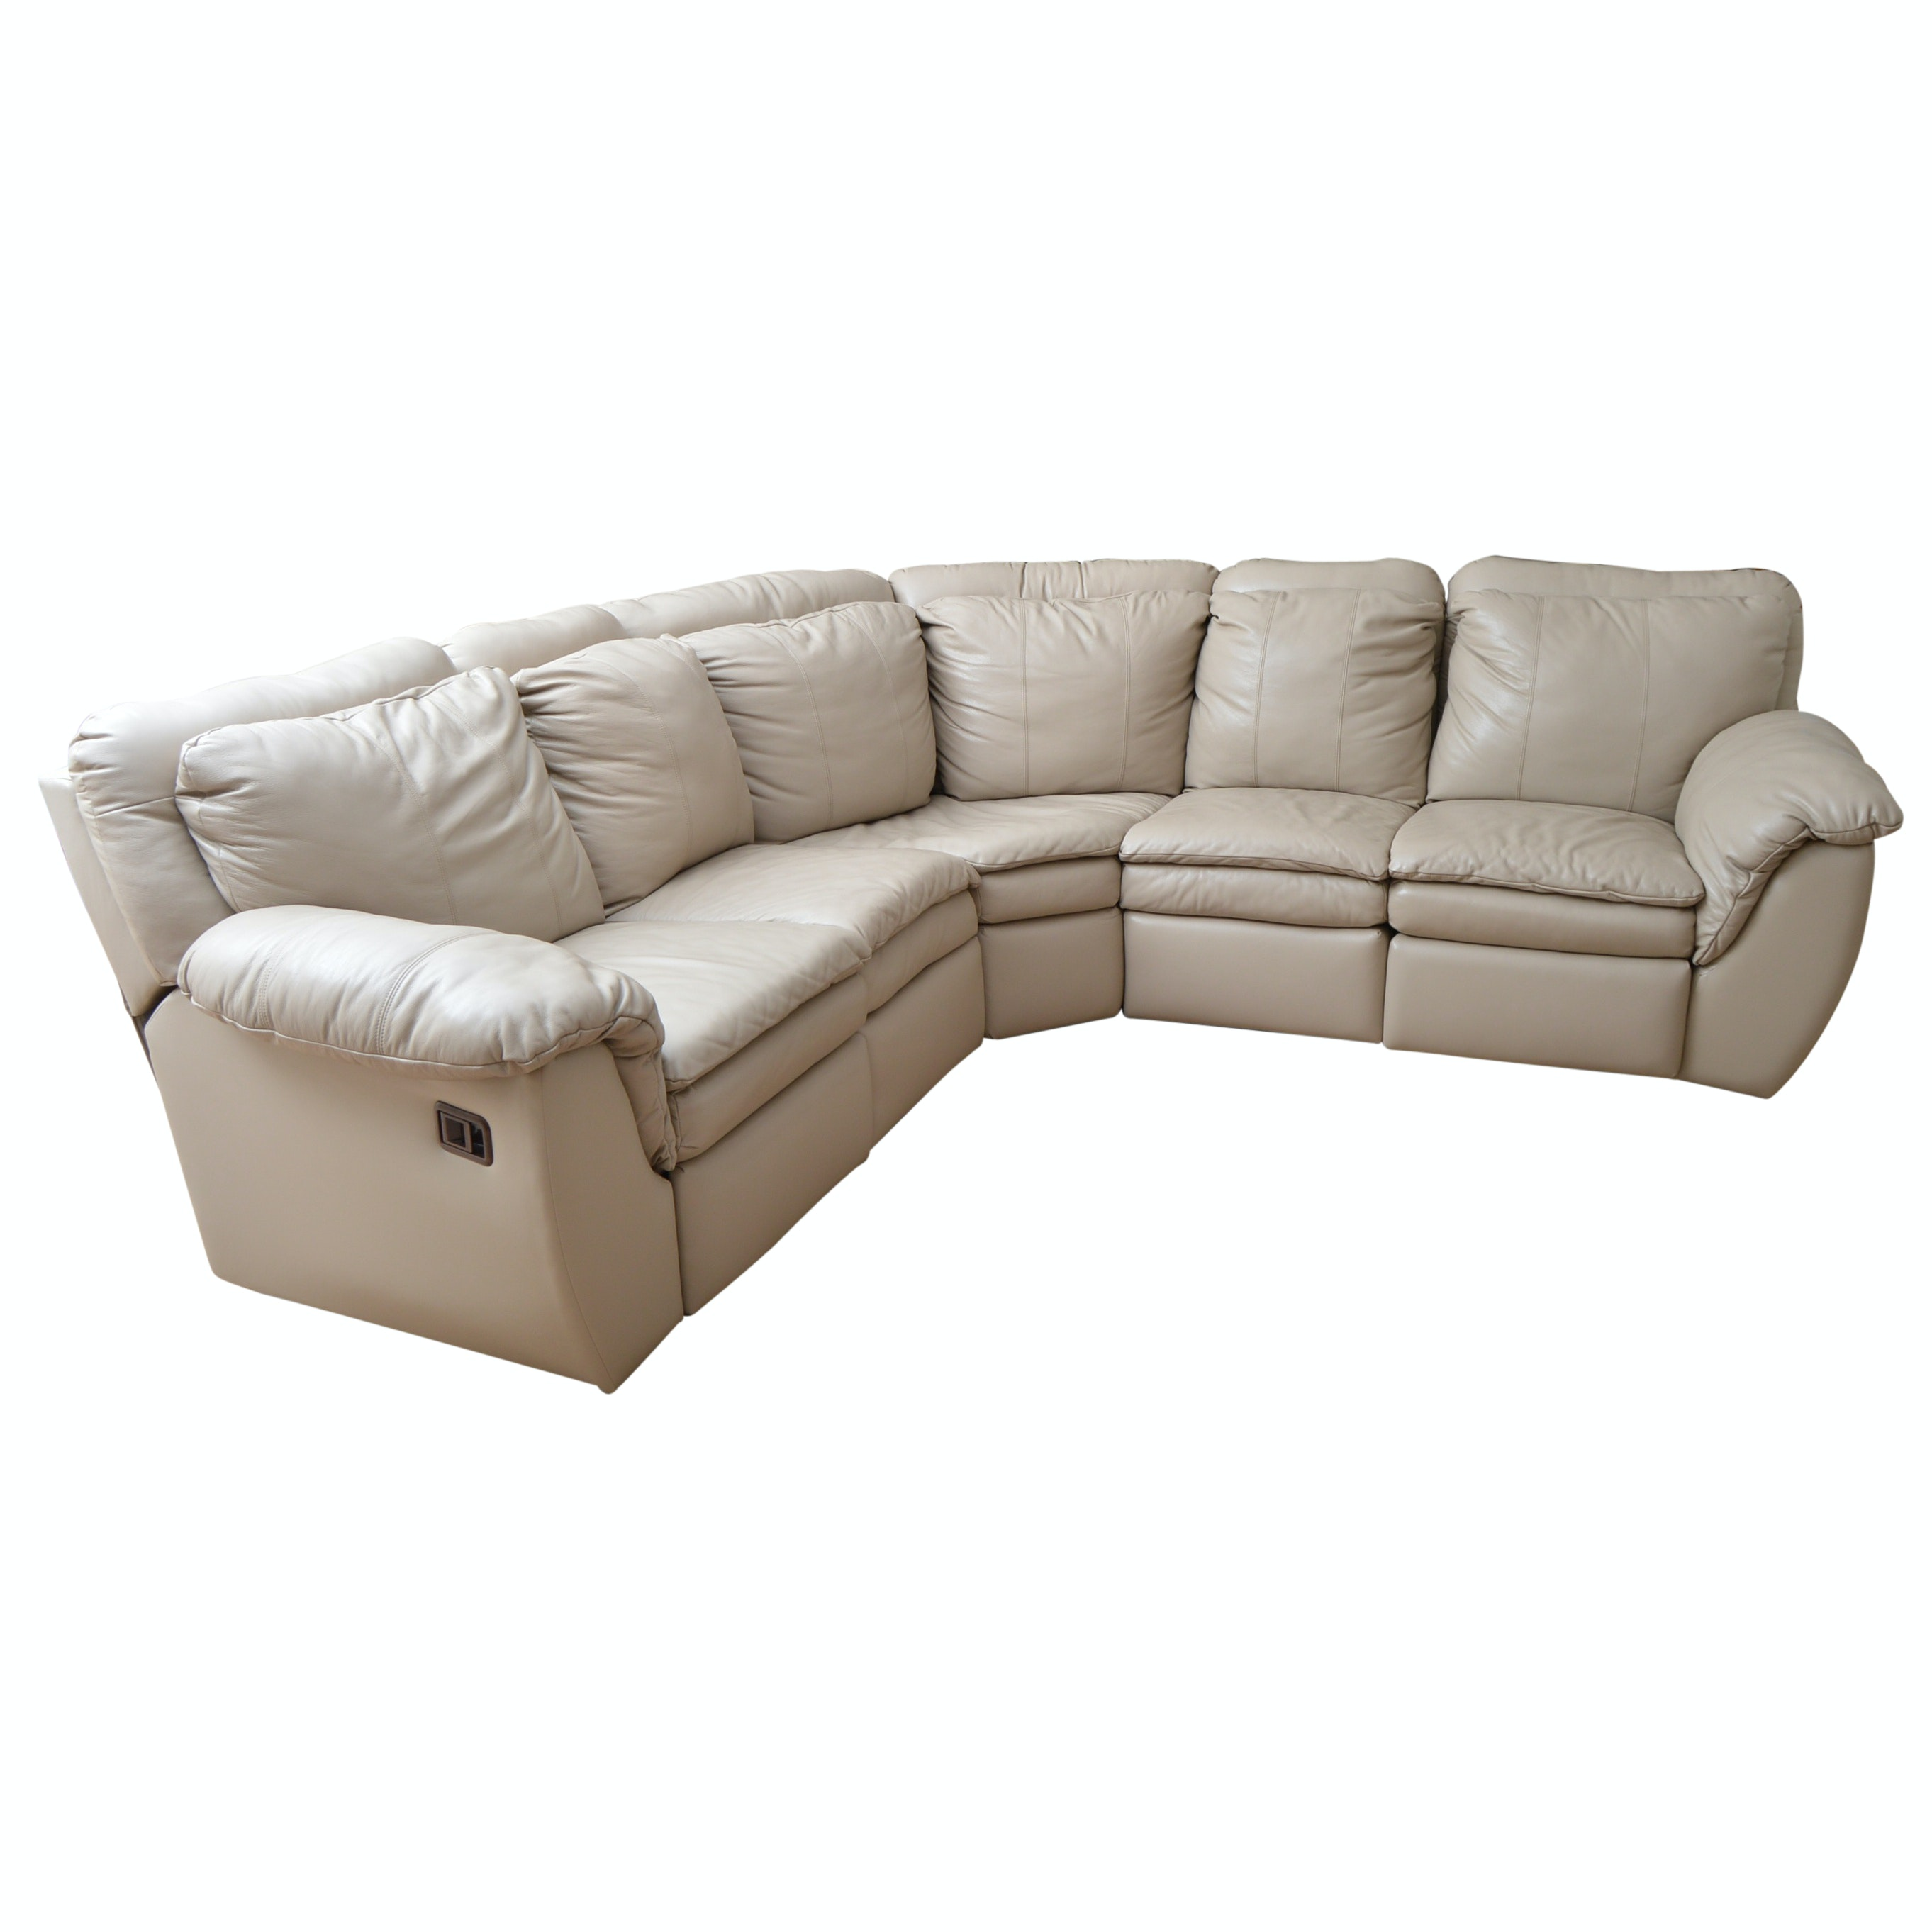 Beige Leather Sectional with Two Recliners